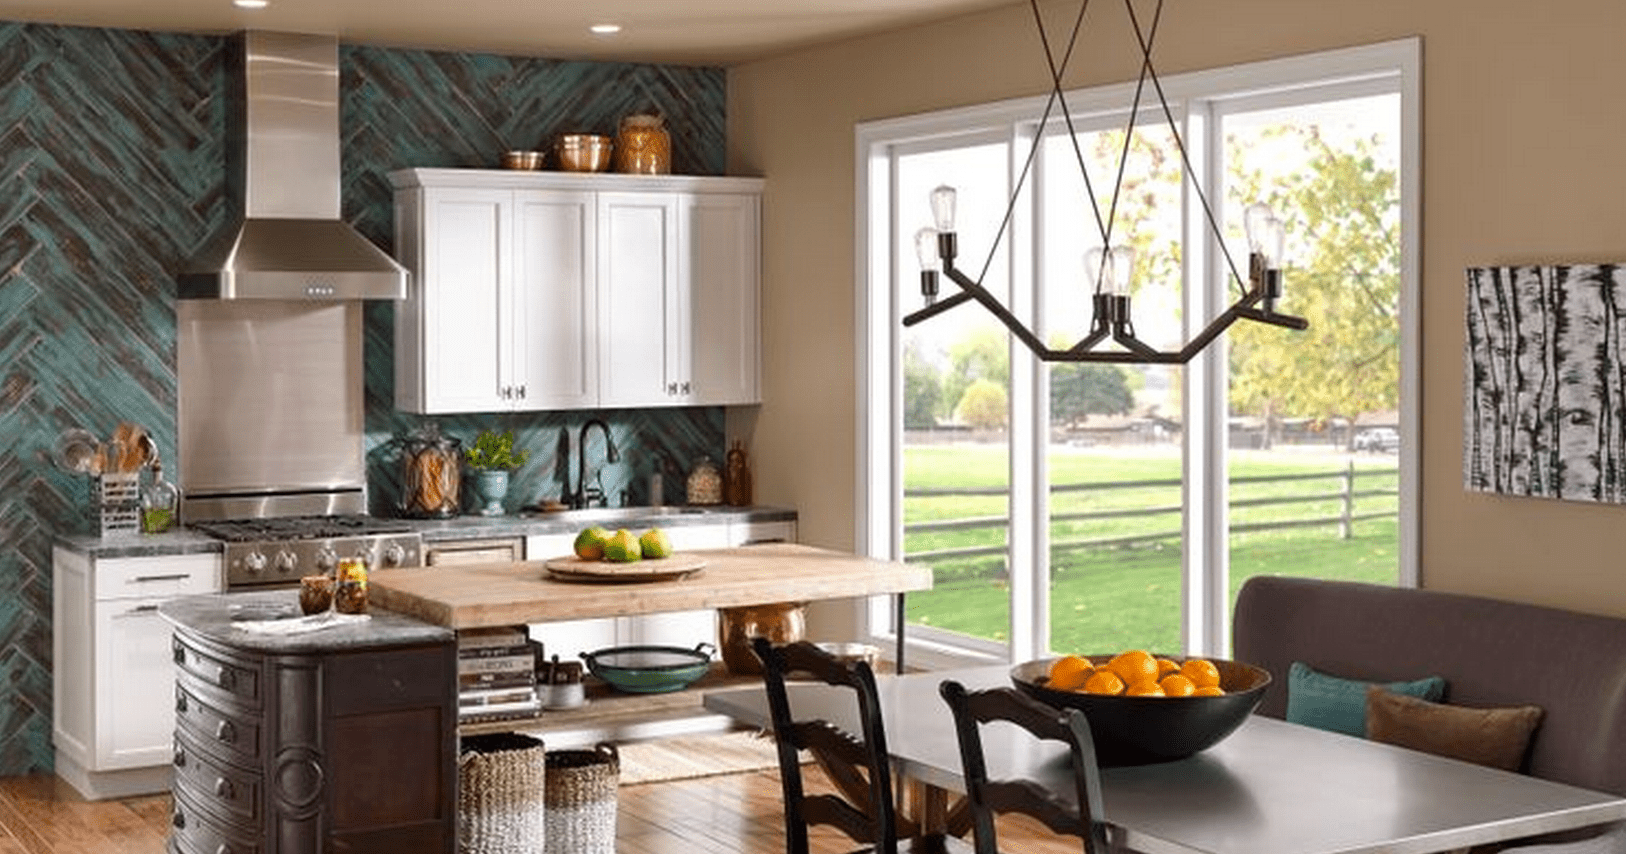 Top 7 Warm Paint Colors From Behr